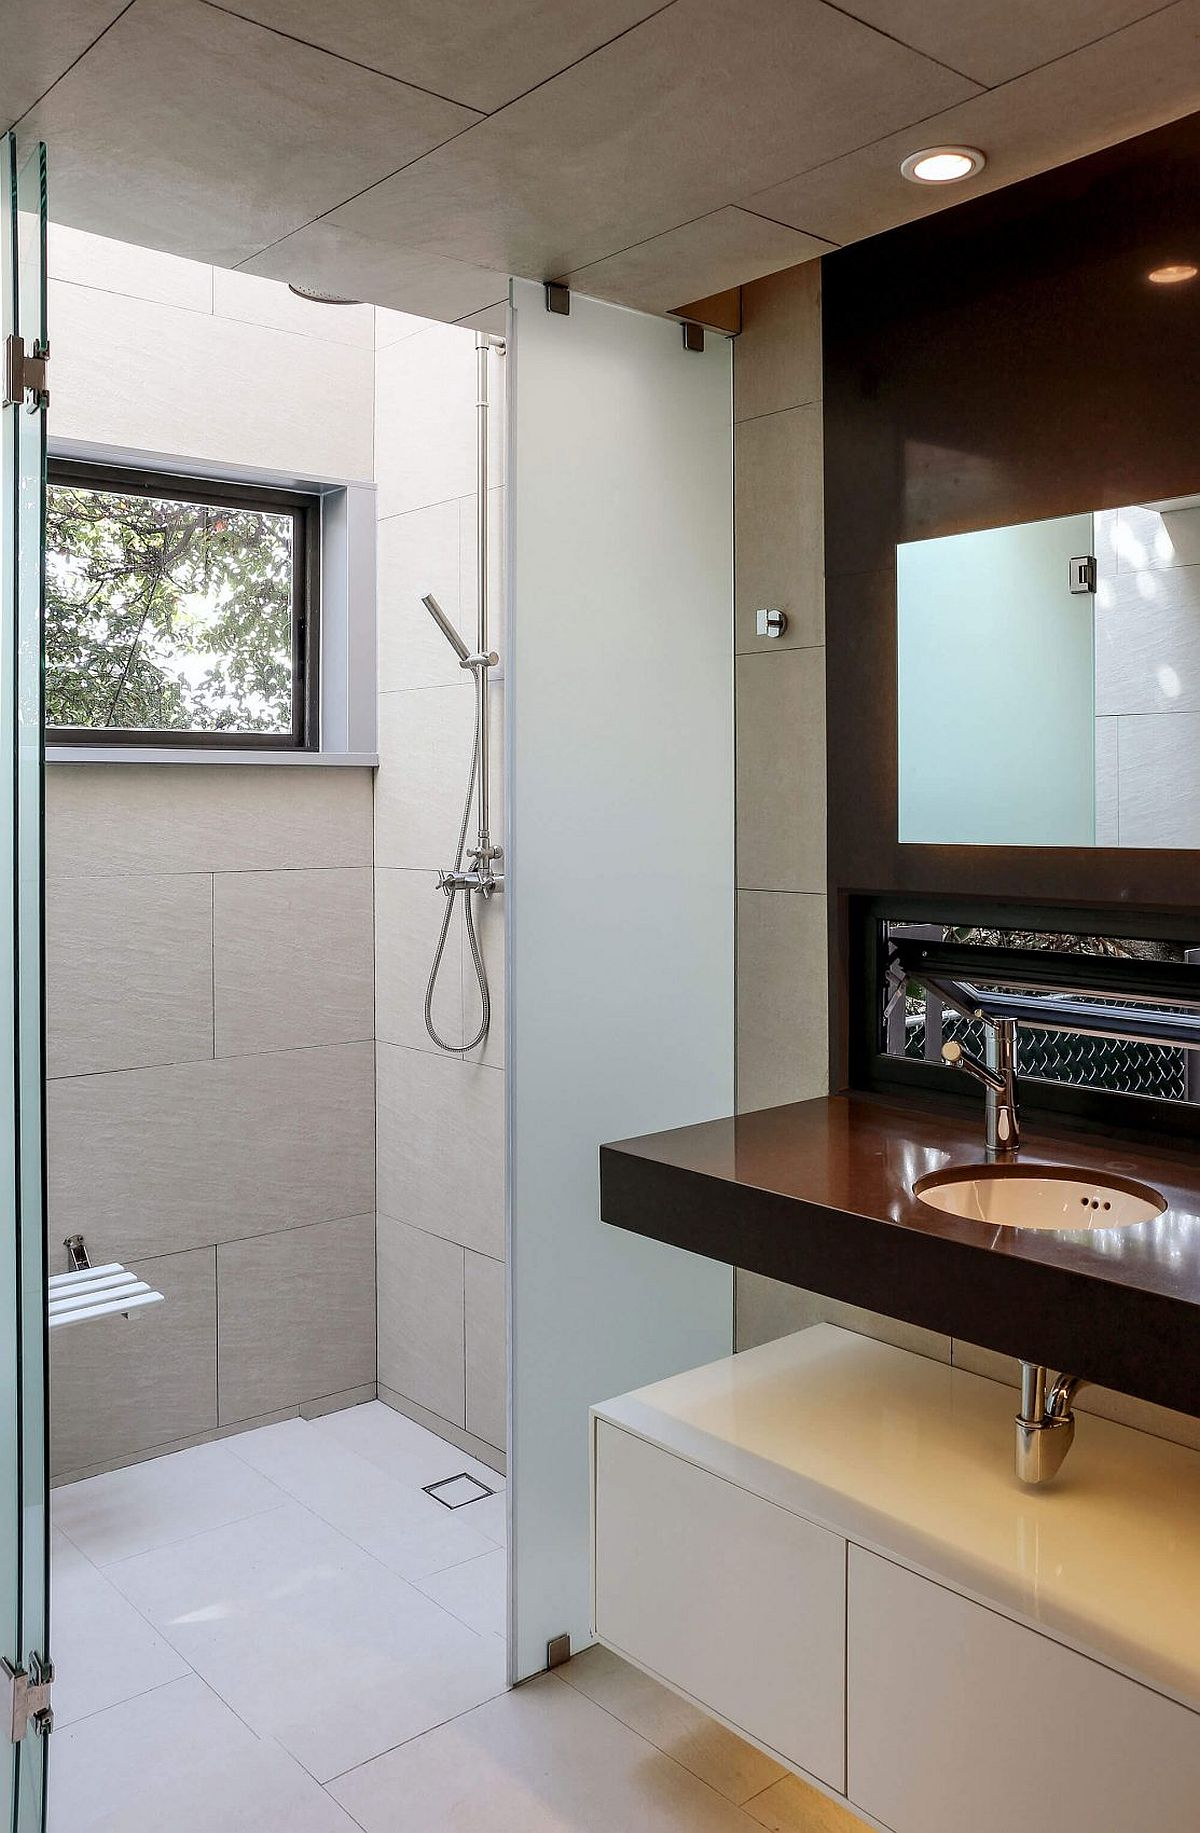 Contemporary bathroom with ample light